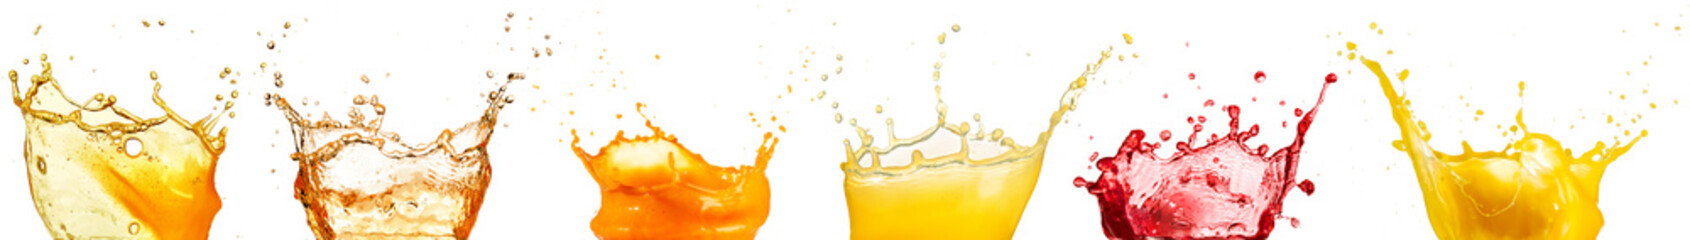 fruit juice splash collection isolated on white